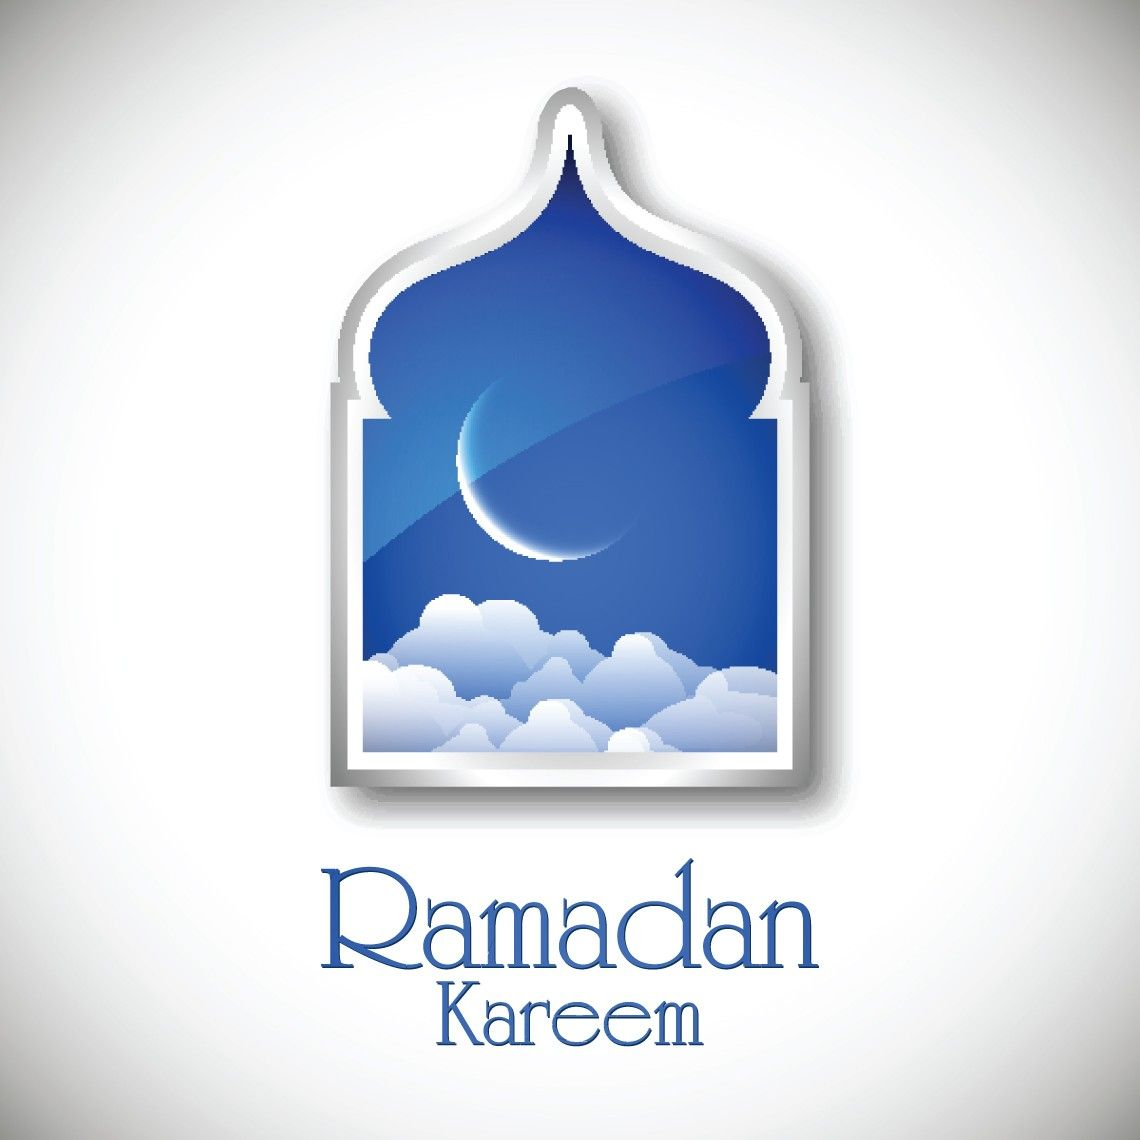 Hd wallpaper ramzan mubarak - Ramadan Mubarak Hd Wallpapers 12